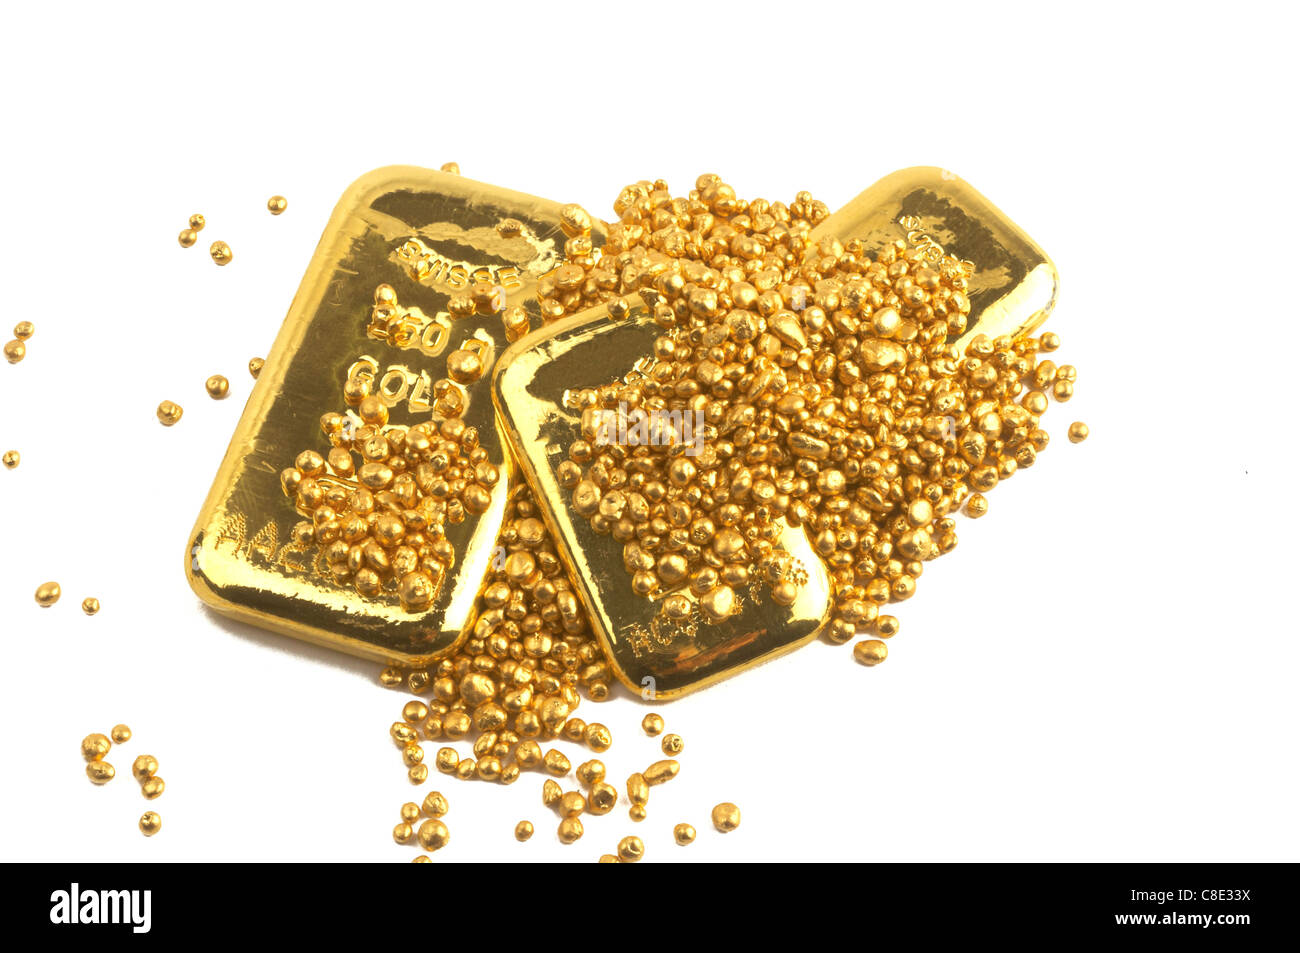 bank banking bars buillon business care currency economy exchange finance financial fortune gold goldbars golden - Stock Image